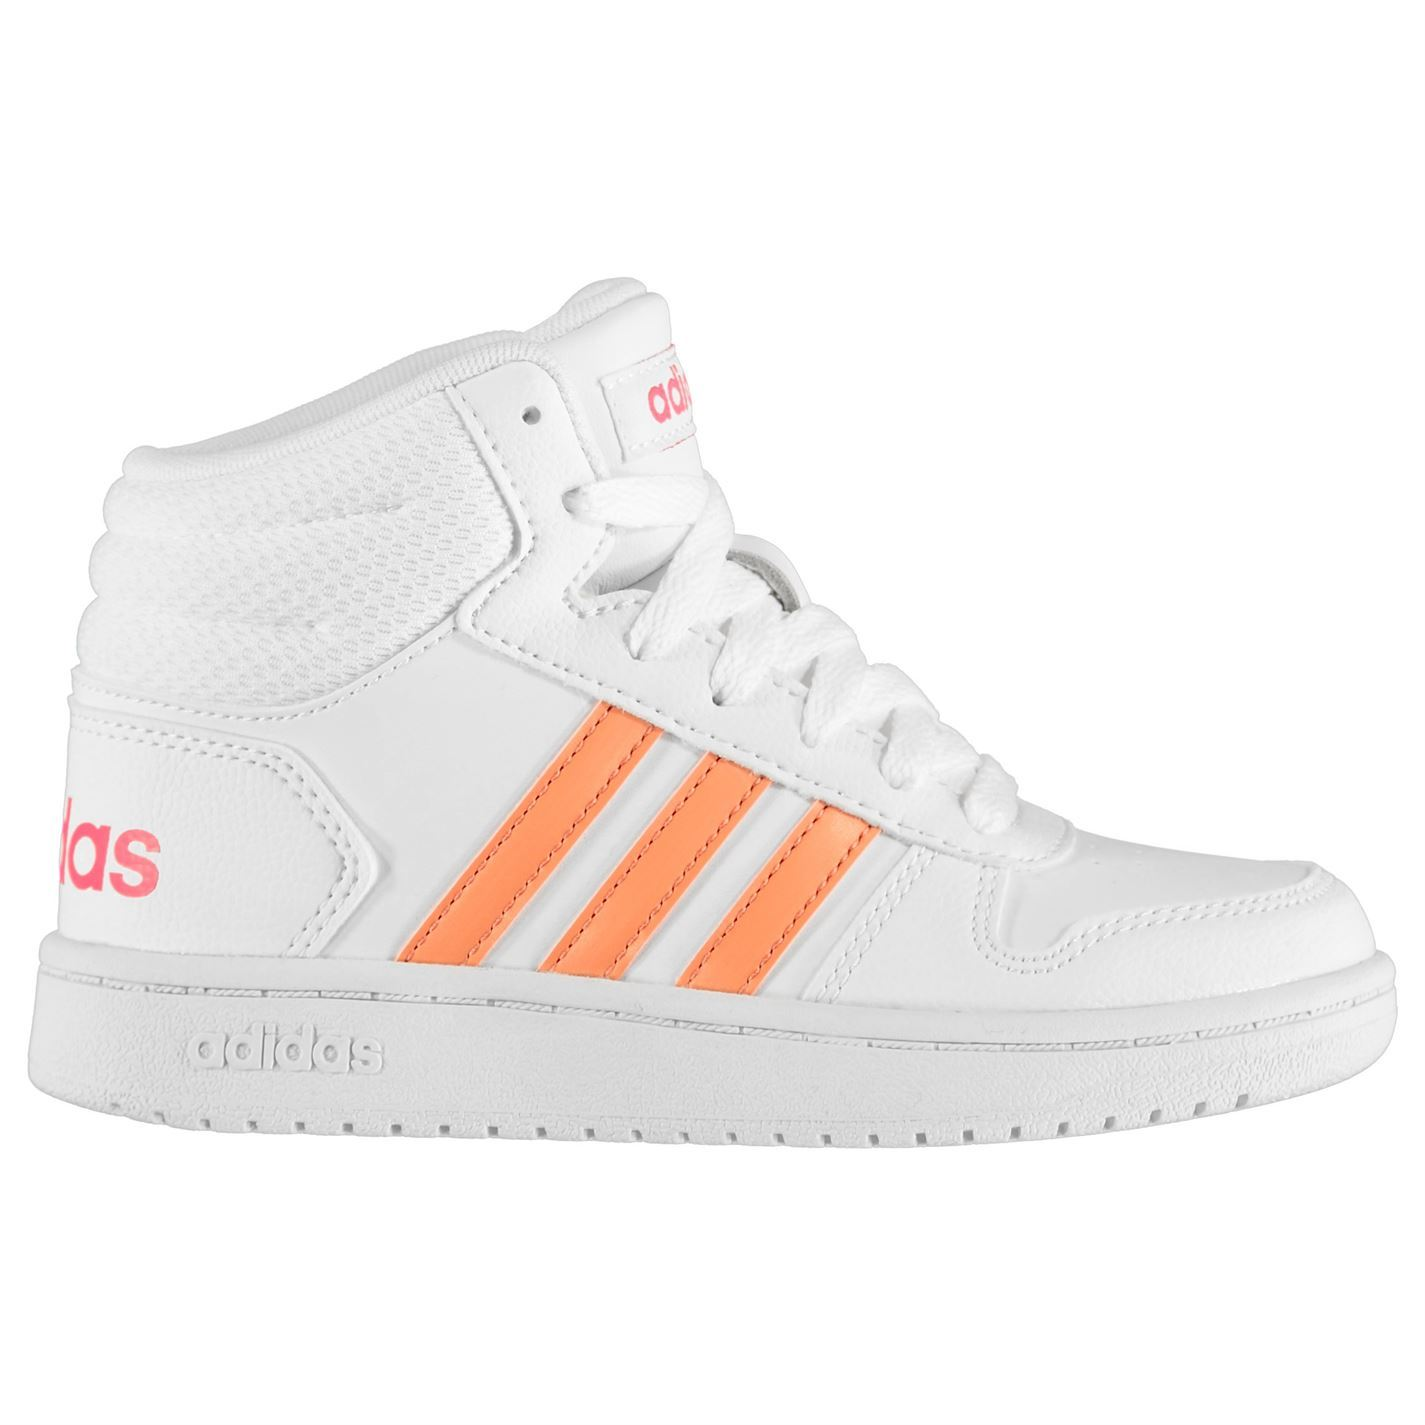 Details about adidas Hoops Mid Top Trainers Child Girls Shoes Casual WhiteCoral Footwear